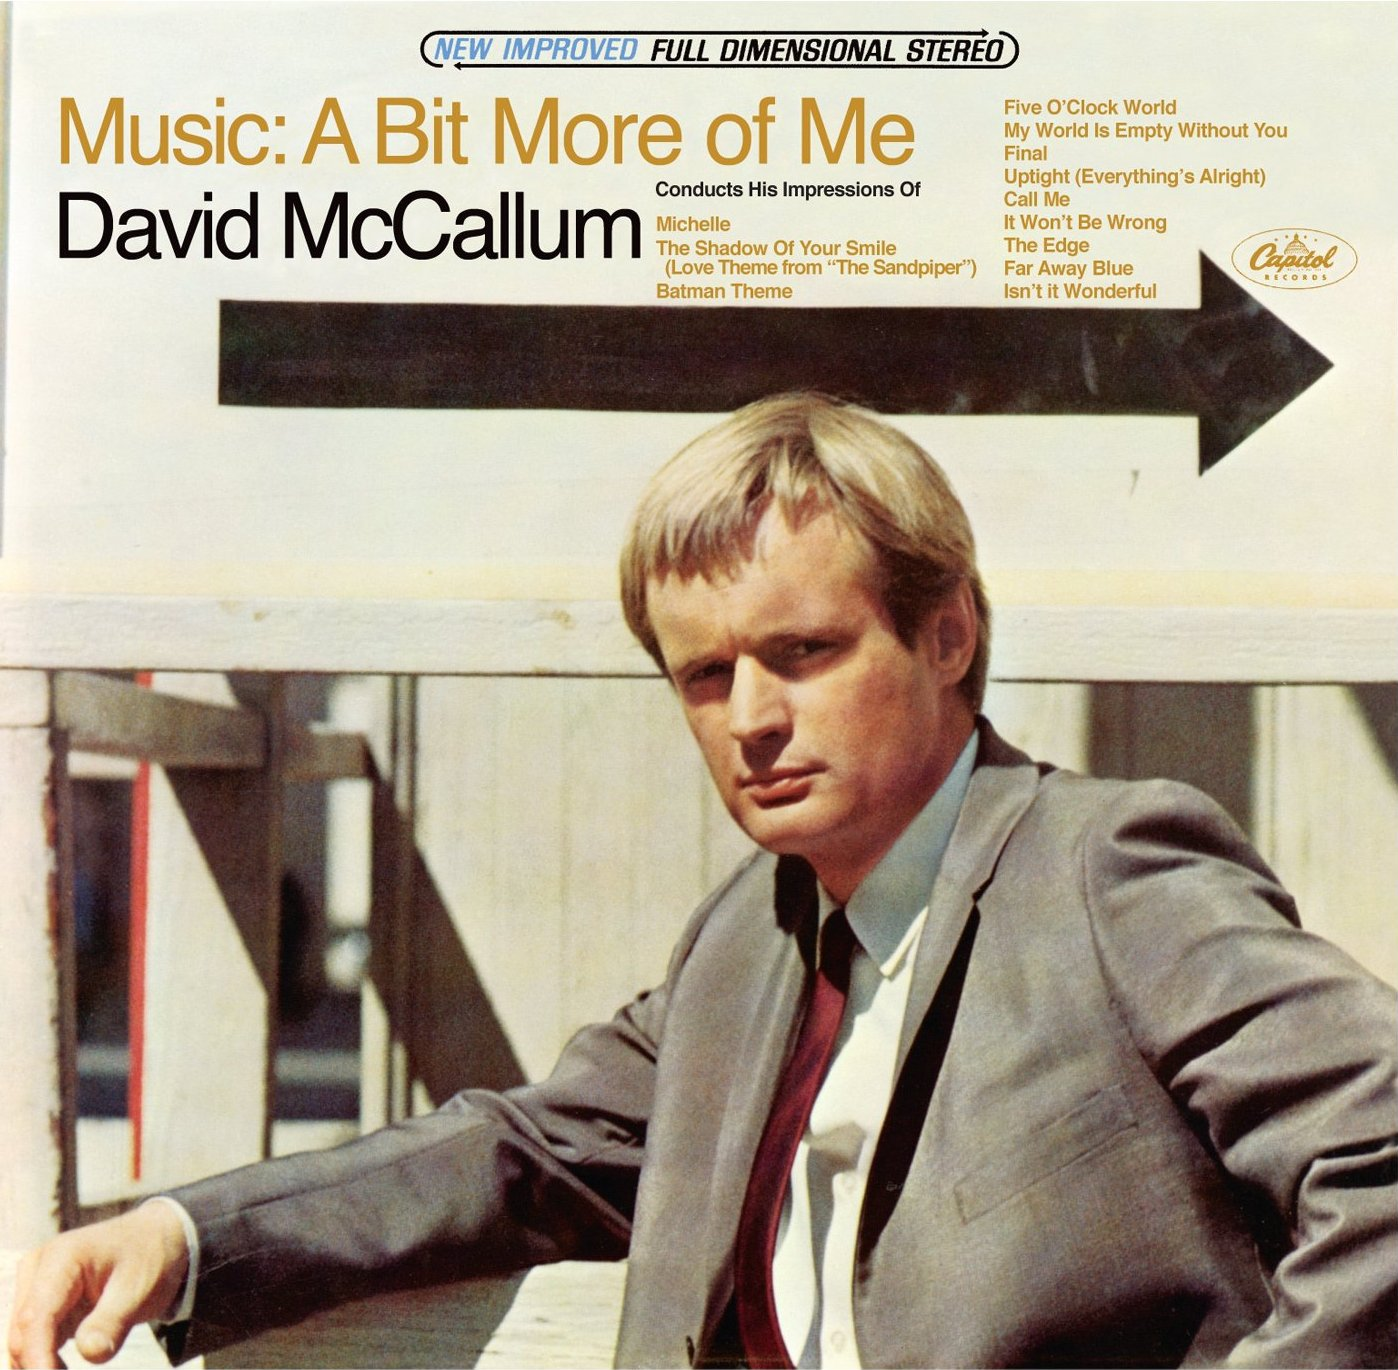 Buy David Mccallum Now!